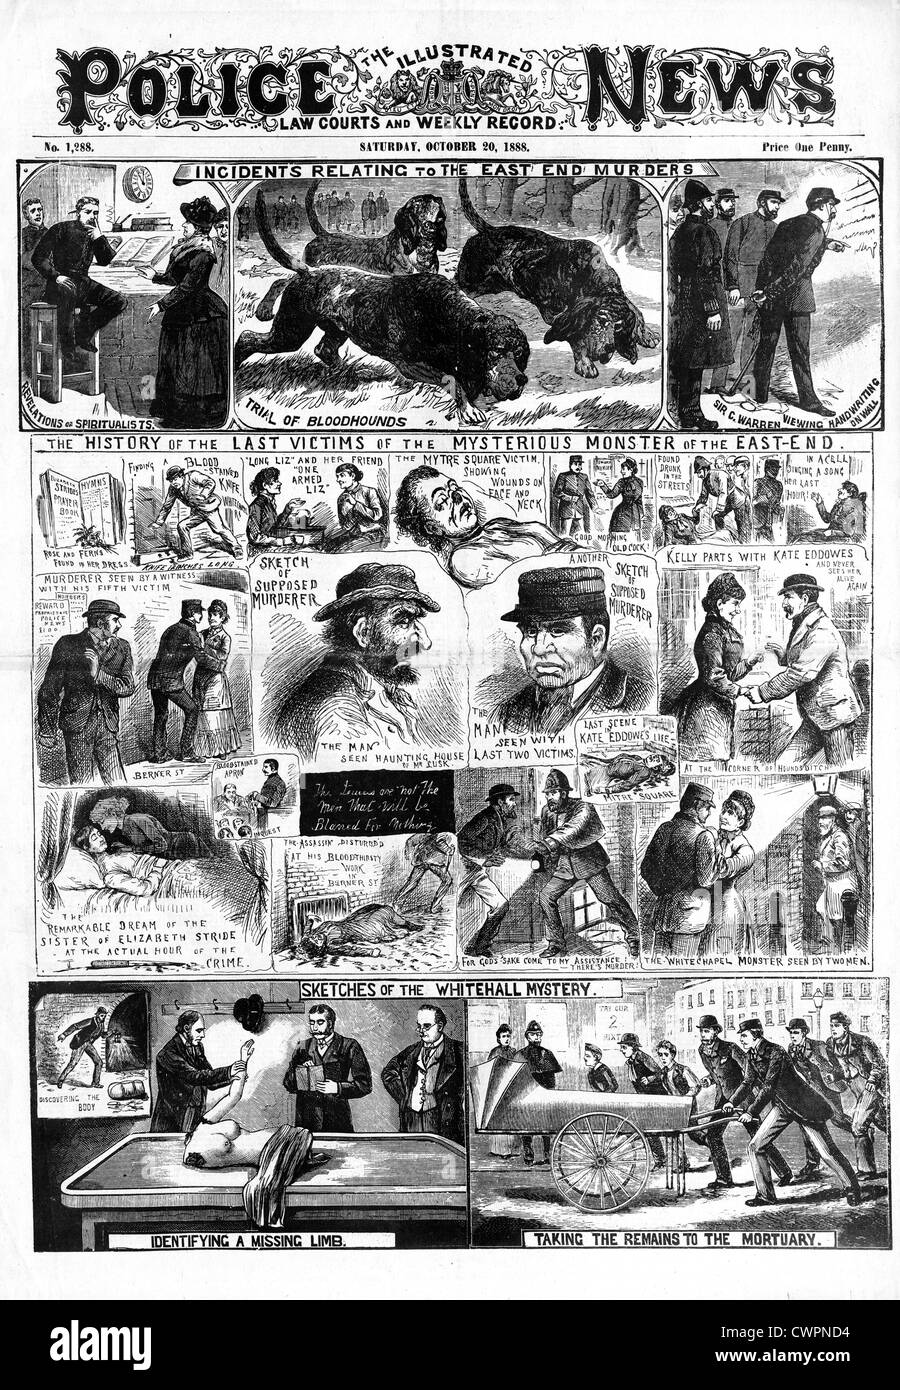 Jack The Ripper, Oct 20 1888, The Police News front page reporting the activities to date of the notorious Victorian - Stock Image